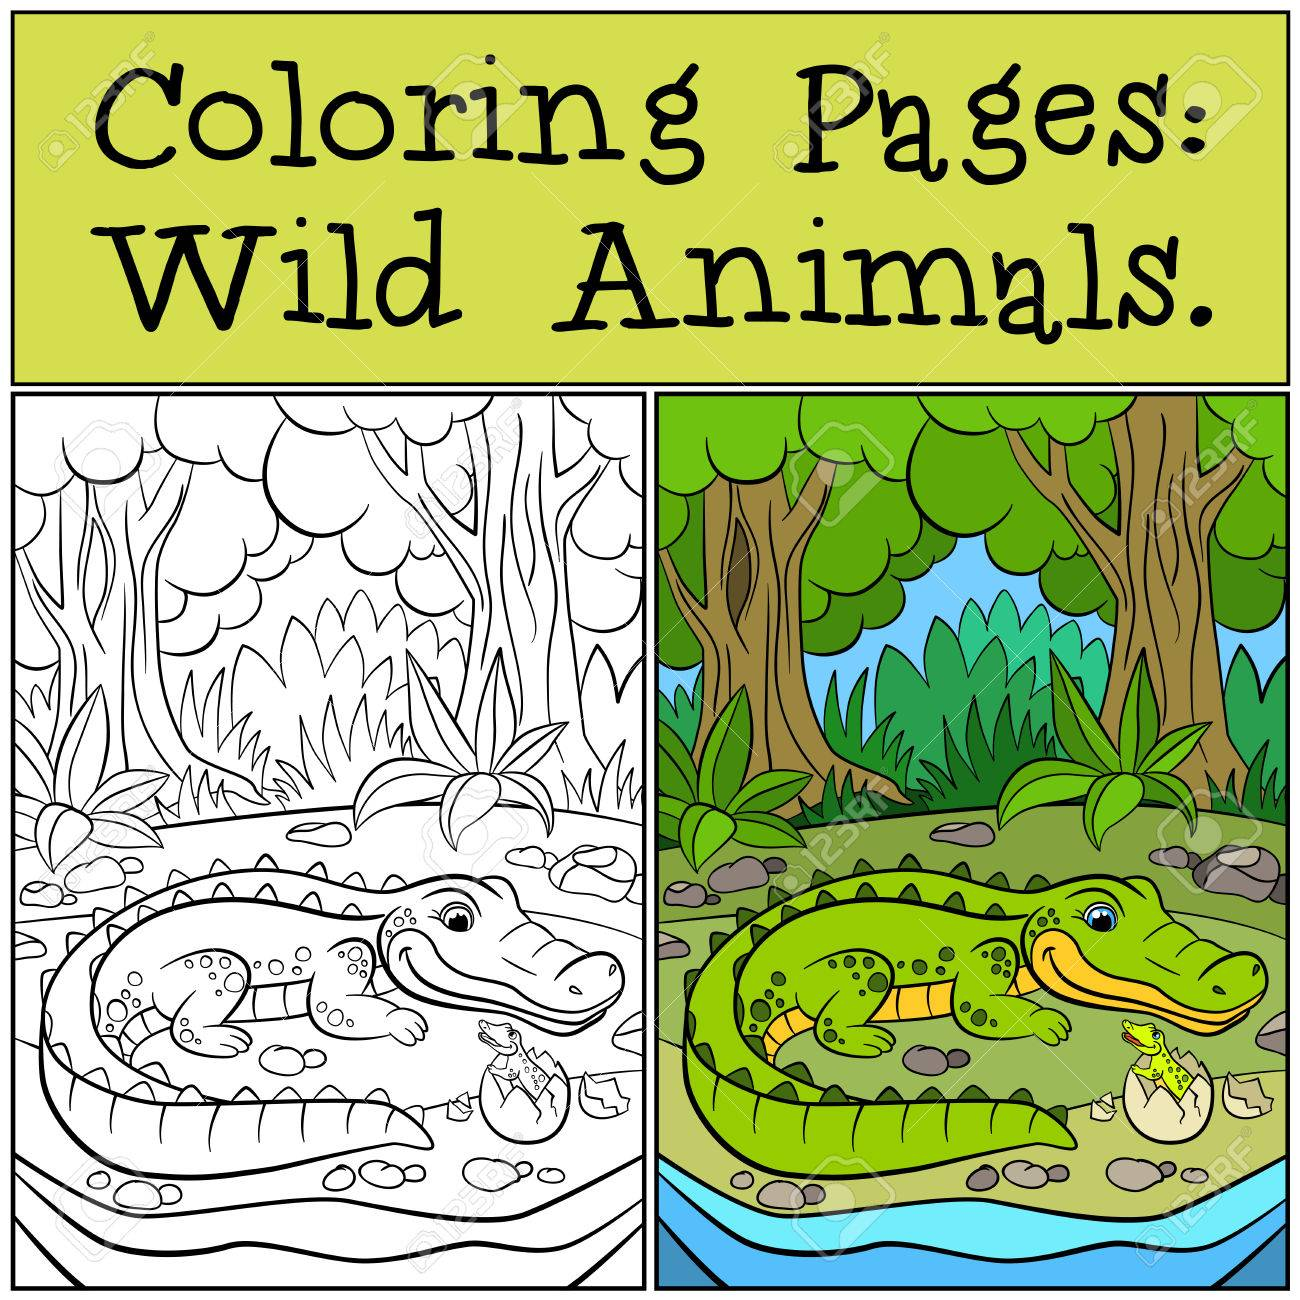 Coloring Pages: Wild Animals. Mother Alligator Looks At Her Little ...